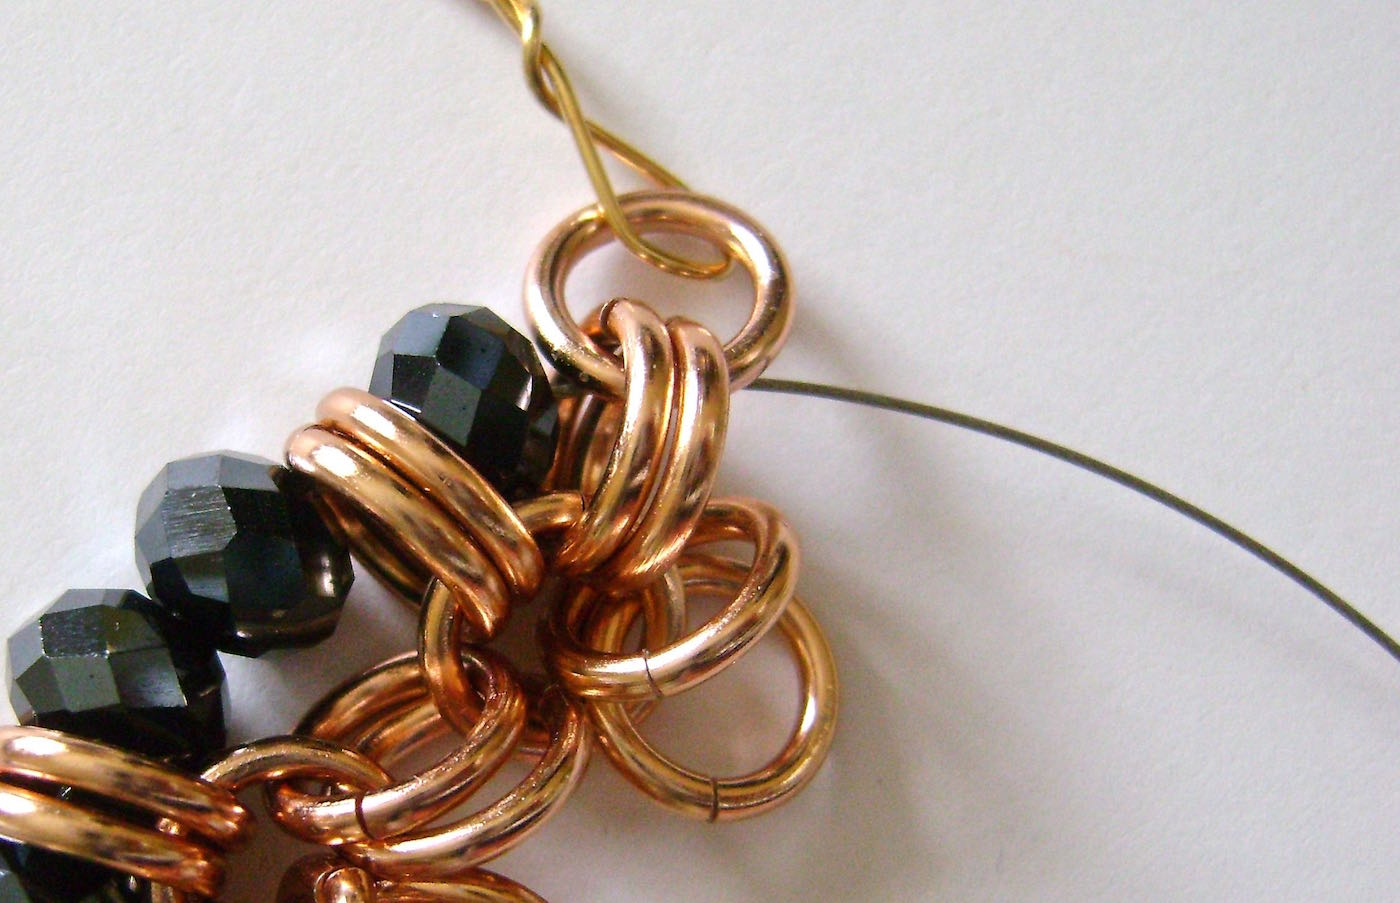 step 4 - Add two beads and pass through the next two rings.